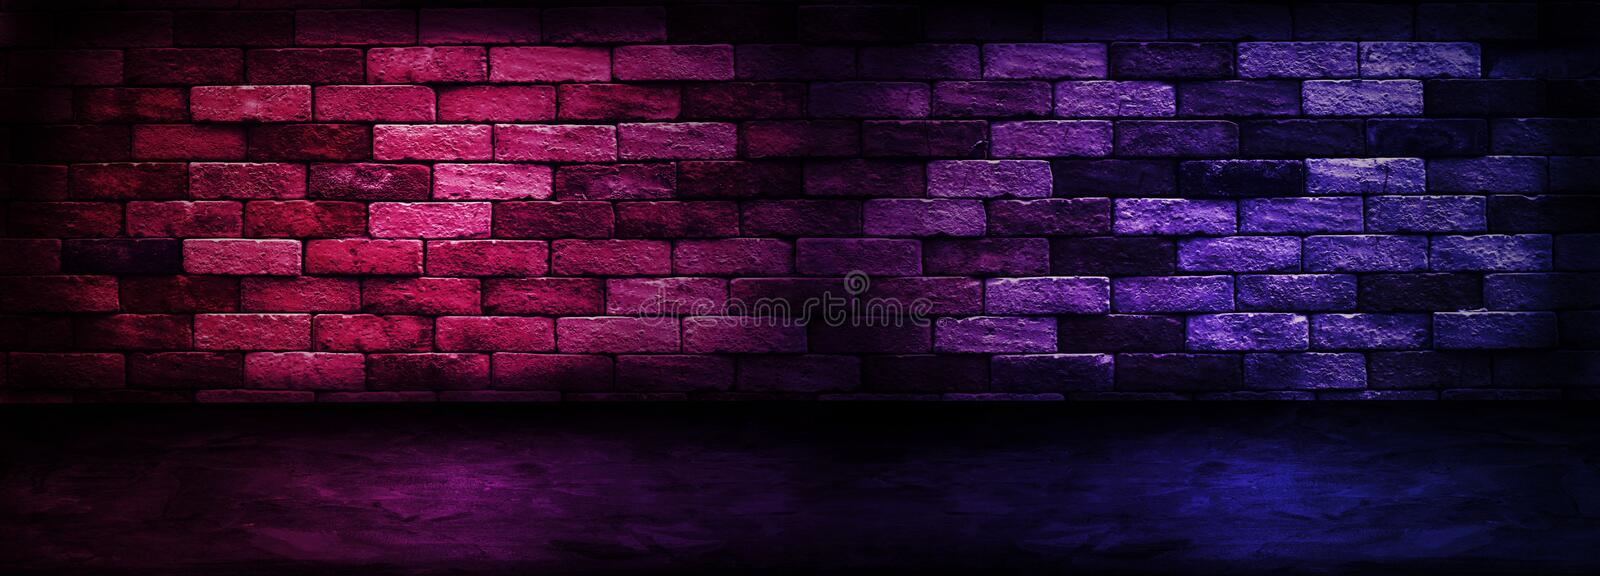 Studio dark room with lighting effect red and blue on brick wall gradient background for interior decoration. Abstract image of Studio dark room with lighting royalty free stock image